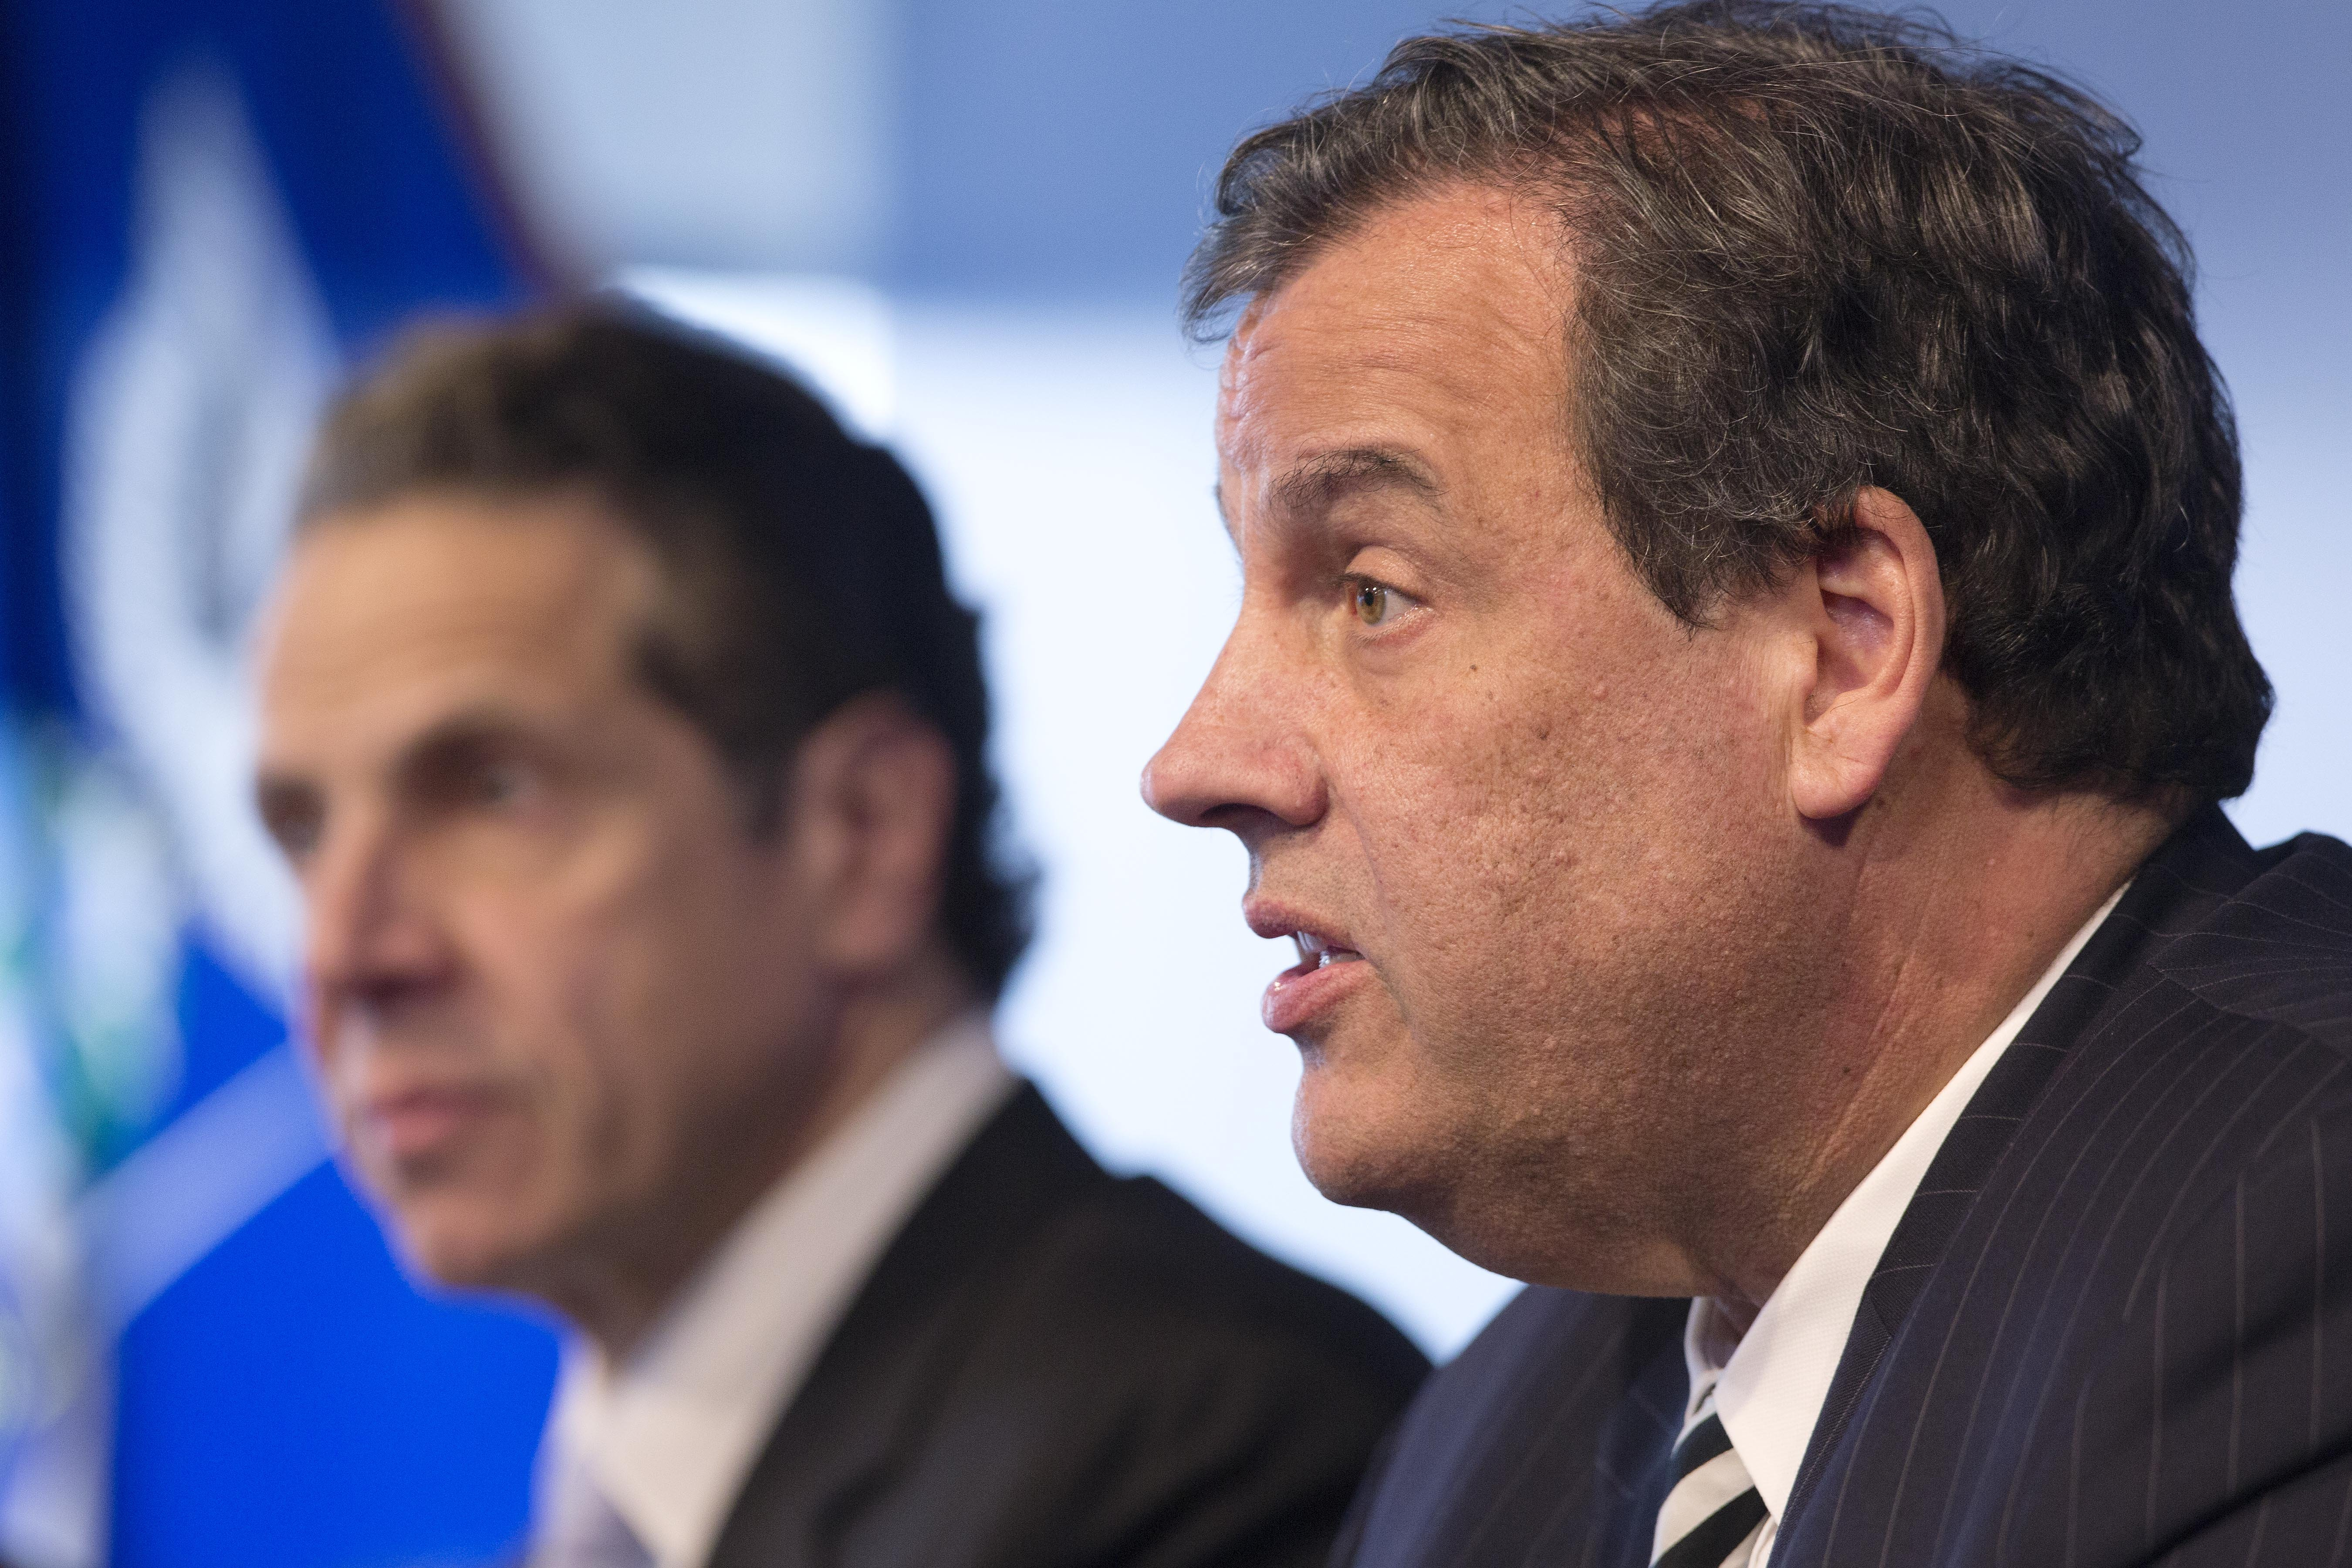 New York Governor Andrew Cuomo listens as New Jersey Governor Chris Christie talks at a news conference ON Oct. 24, 2014 in New York.